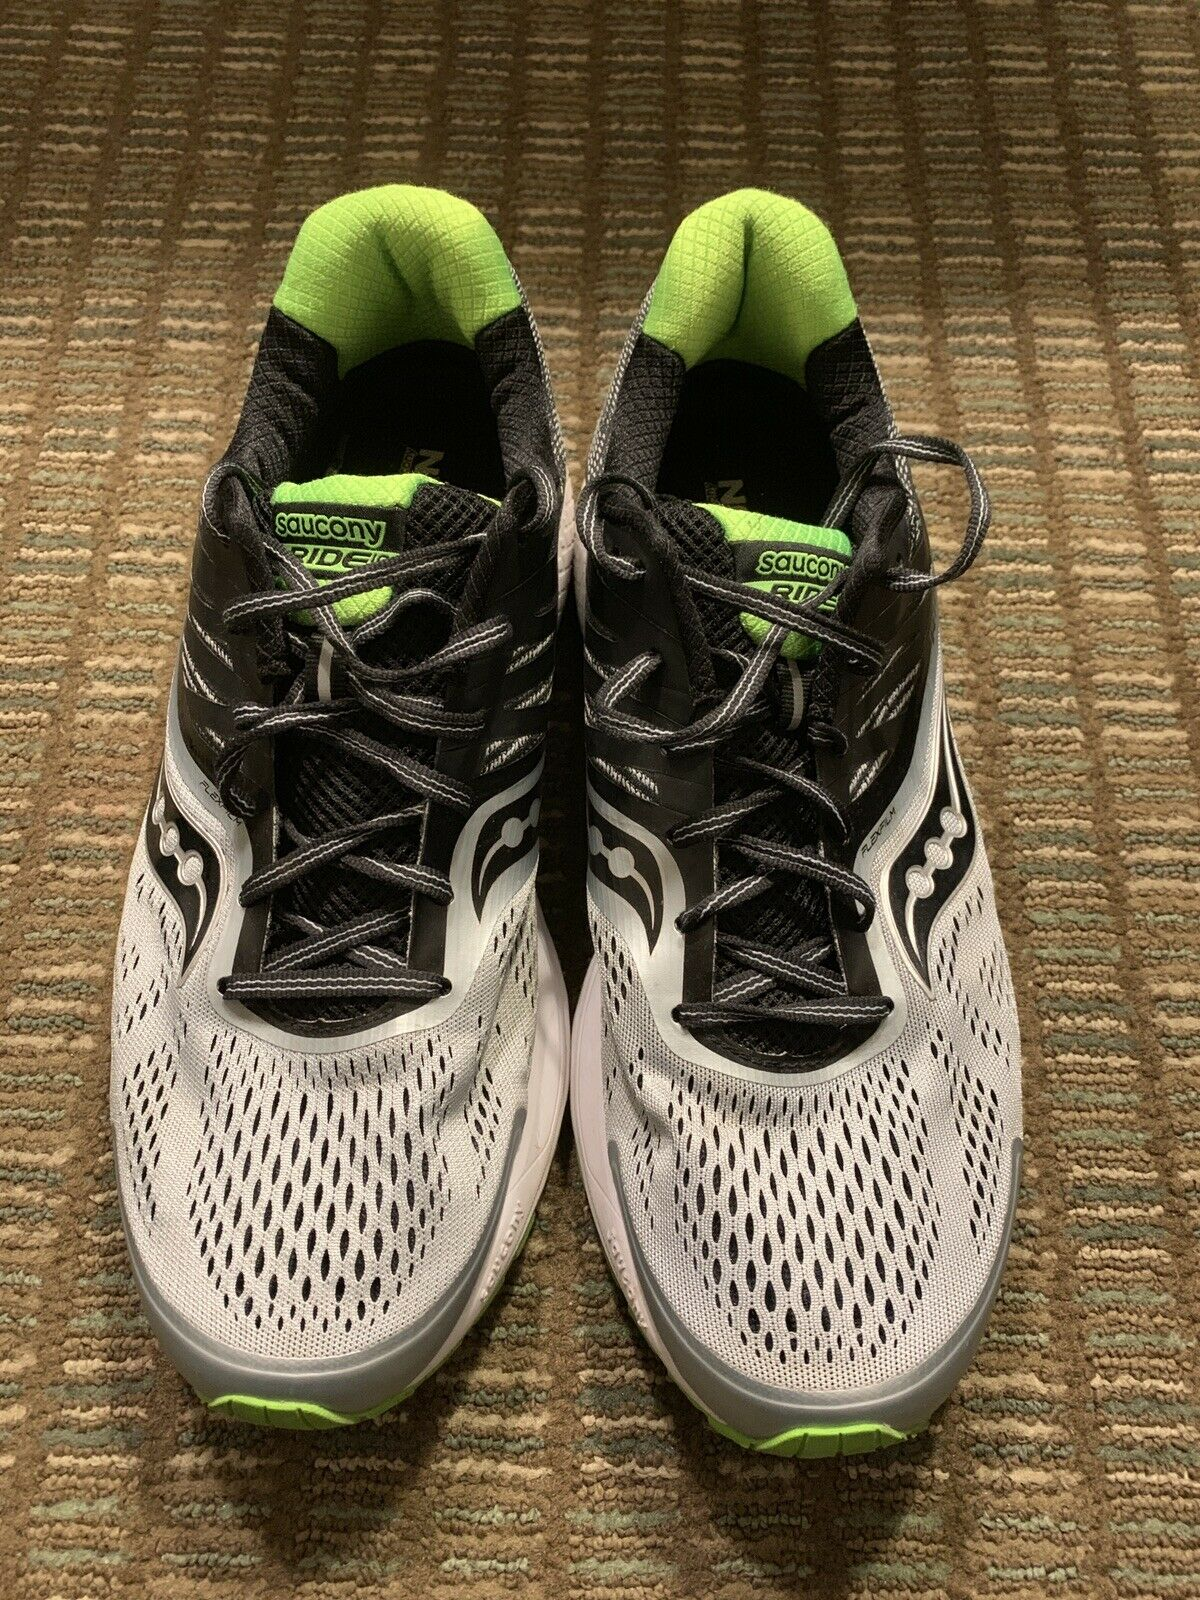 Saucony Ride 10 Men's Running shoes Size 12.5 Silver Green